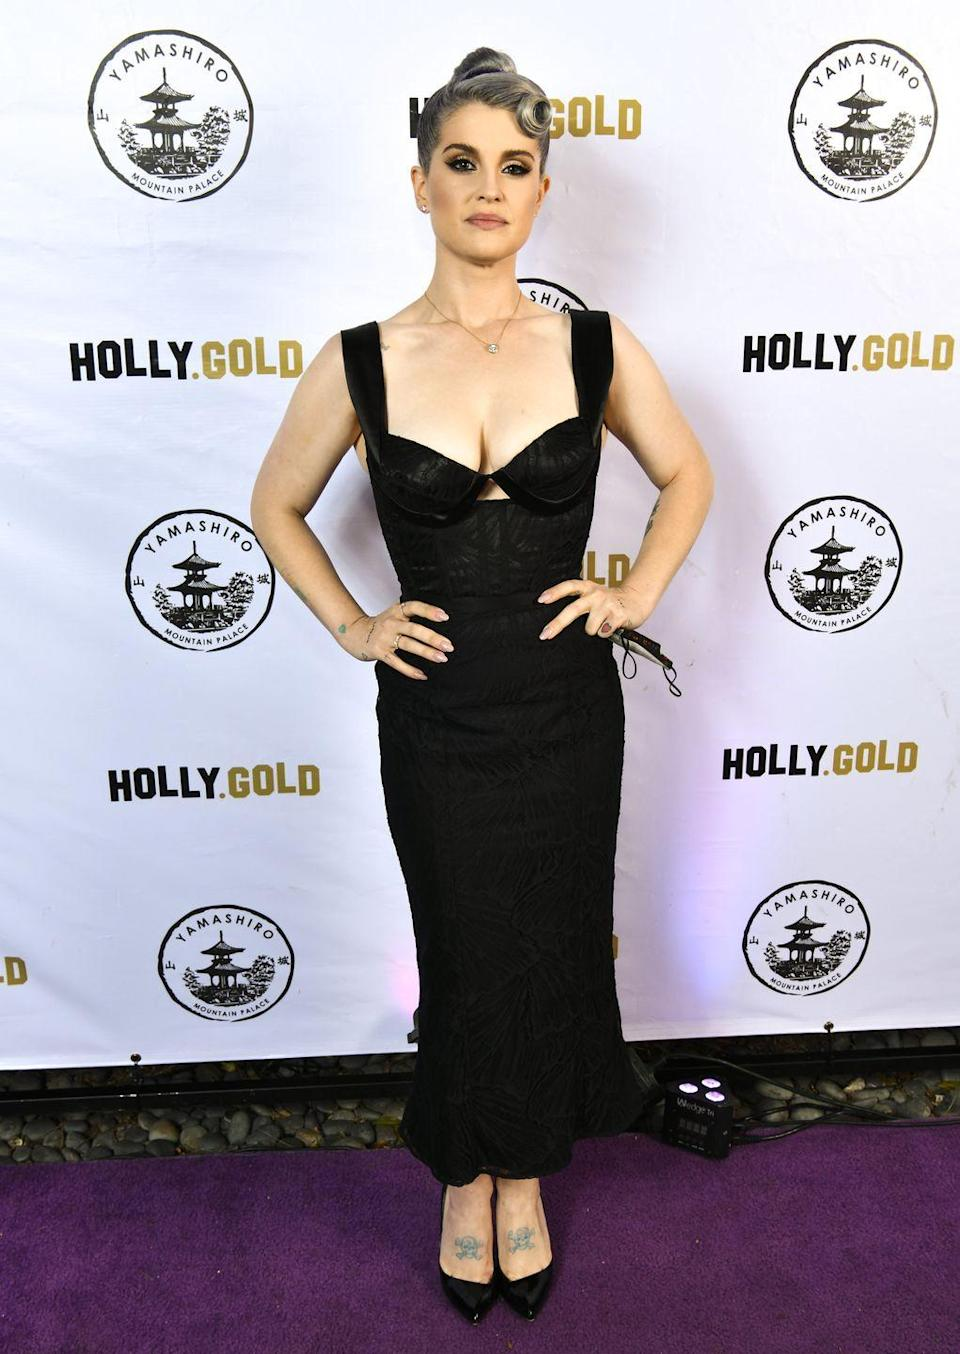 """<p>Lots of celebs who go on <em>Dancing with the Stars</em> lose pounds in the process—likely because of the intense practice schedule—and Kelly Osbourne is one of them. However, in 2020, the star told <em><a href=""""https://people.com/health/kelly-osbourne-gastric-sleeve-surgery-lost-85-lbs/"""" rel=""""nofollow noopener"""" target=""""_blank"""" data-ylk=""""slk:People"""" class=""""link rapid-noclick-resp"""">People</a></em> she opted to have gastric bypass surgery in 2018, resulting in an <a href=""""https://www.prevention.com/weight-loss/a33562689/kelly-osbourne-weight-loss/"""" rel=""""nofollow noopener"""" target=""""_blank"""" data-ylk=""""slk:85 pound drop"""" class=""""link rapid-noclick-resp"""">85 pound drop</a>. """"It is the best thing I have ever done,"""" she said. """"The kind of surgery I had… if you don't work out and you don't eat right, you gain weight. All it does is move you in the right direction."""" That's why she continues to exercise, eat a nutritious diet, and cut out alcohol.<br></p>"""